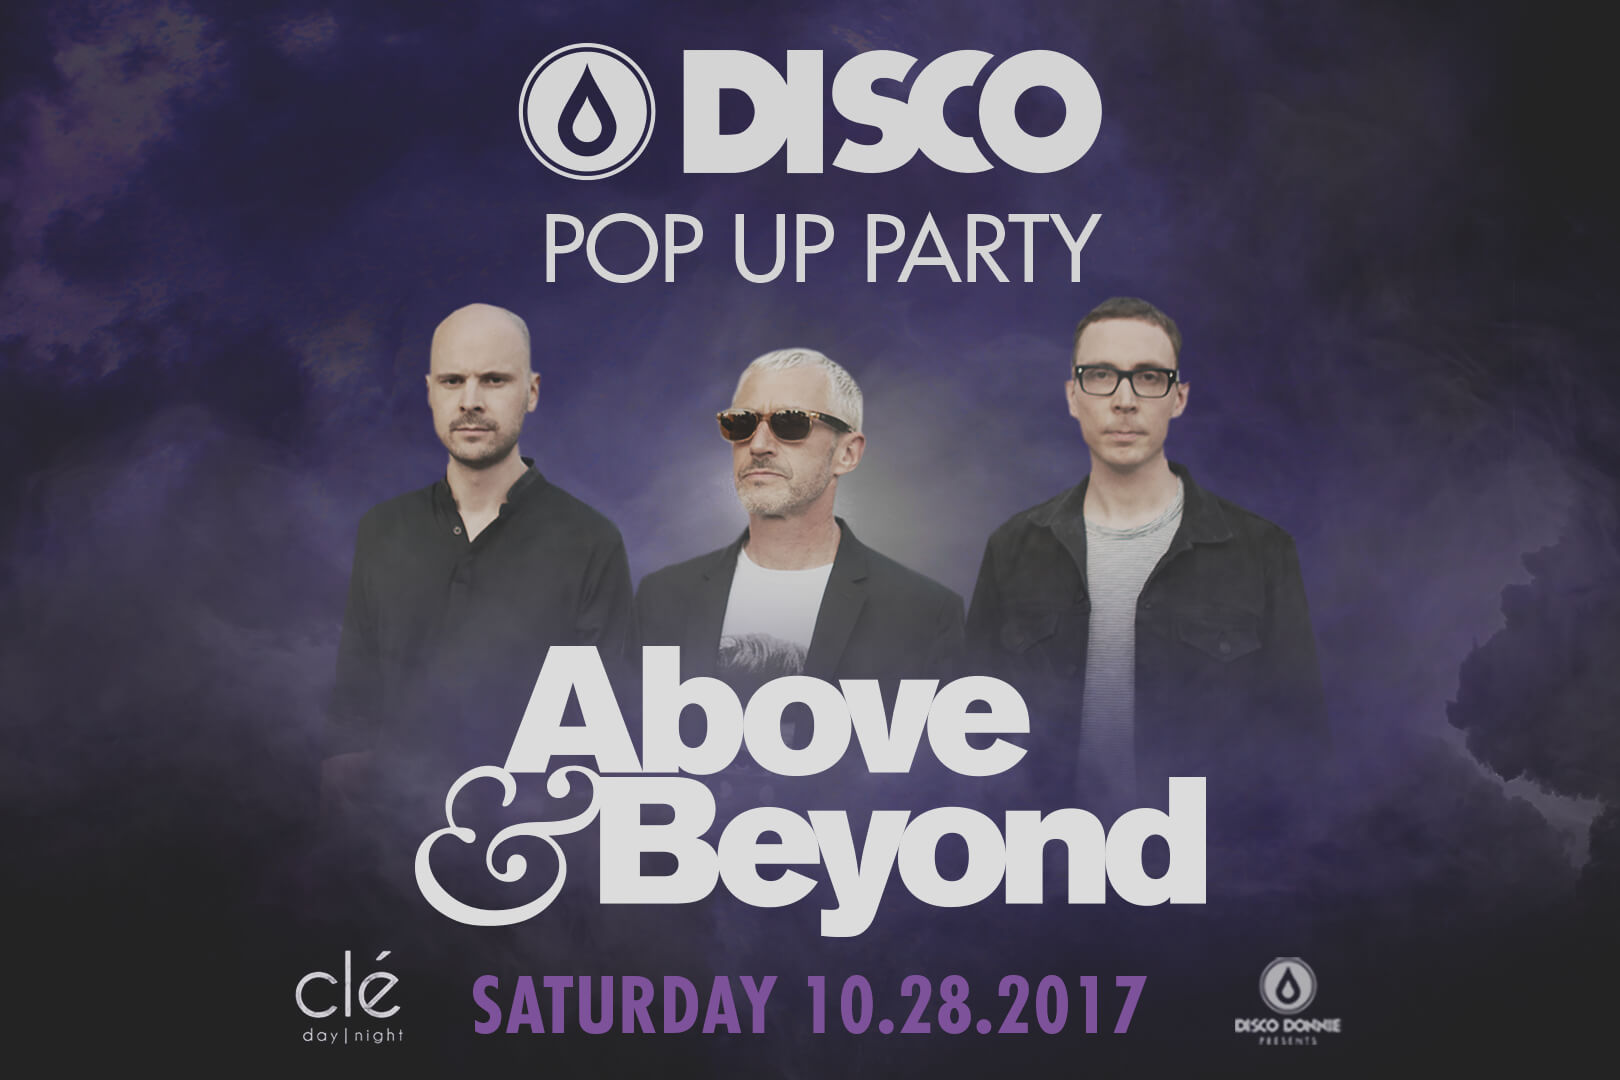 above & beyond disco pop up party in houston